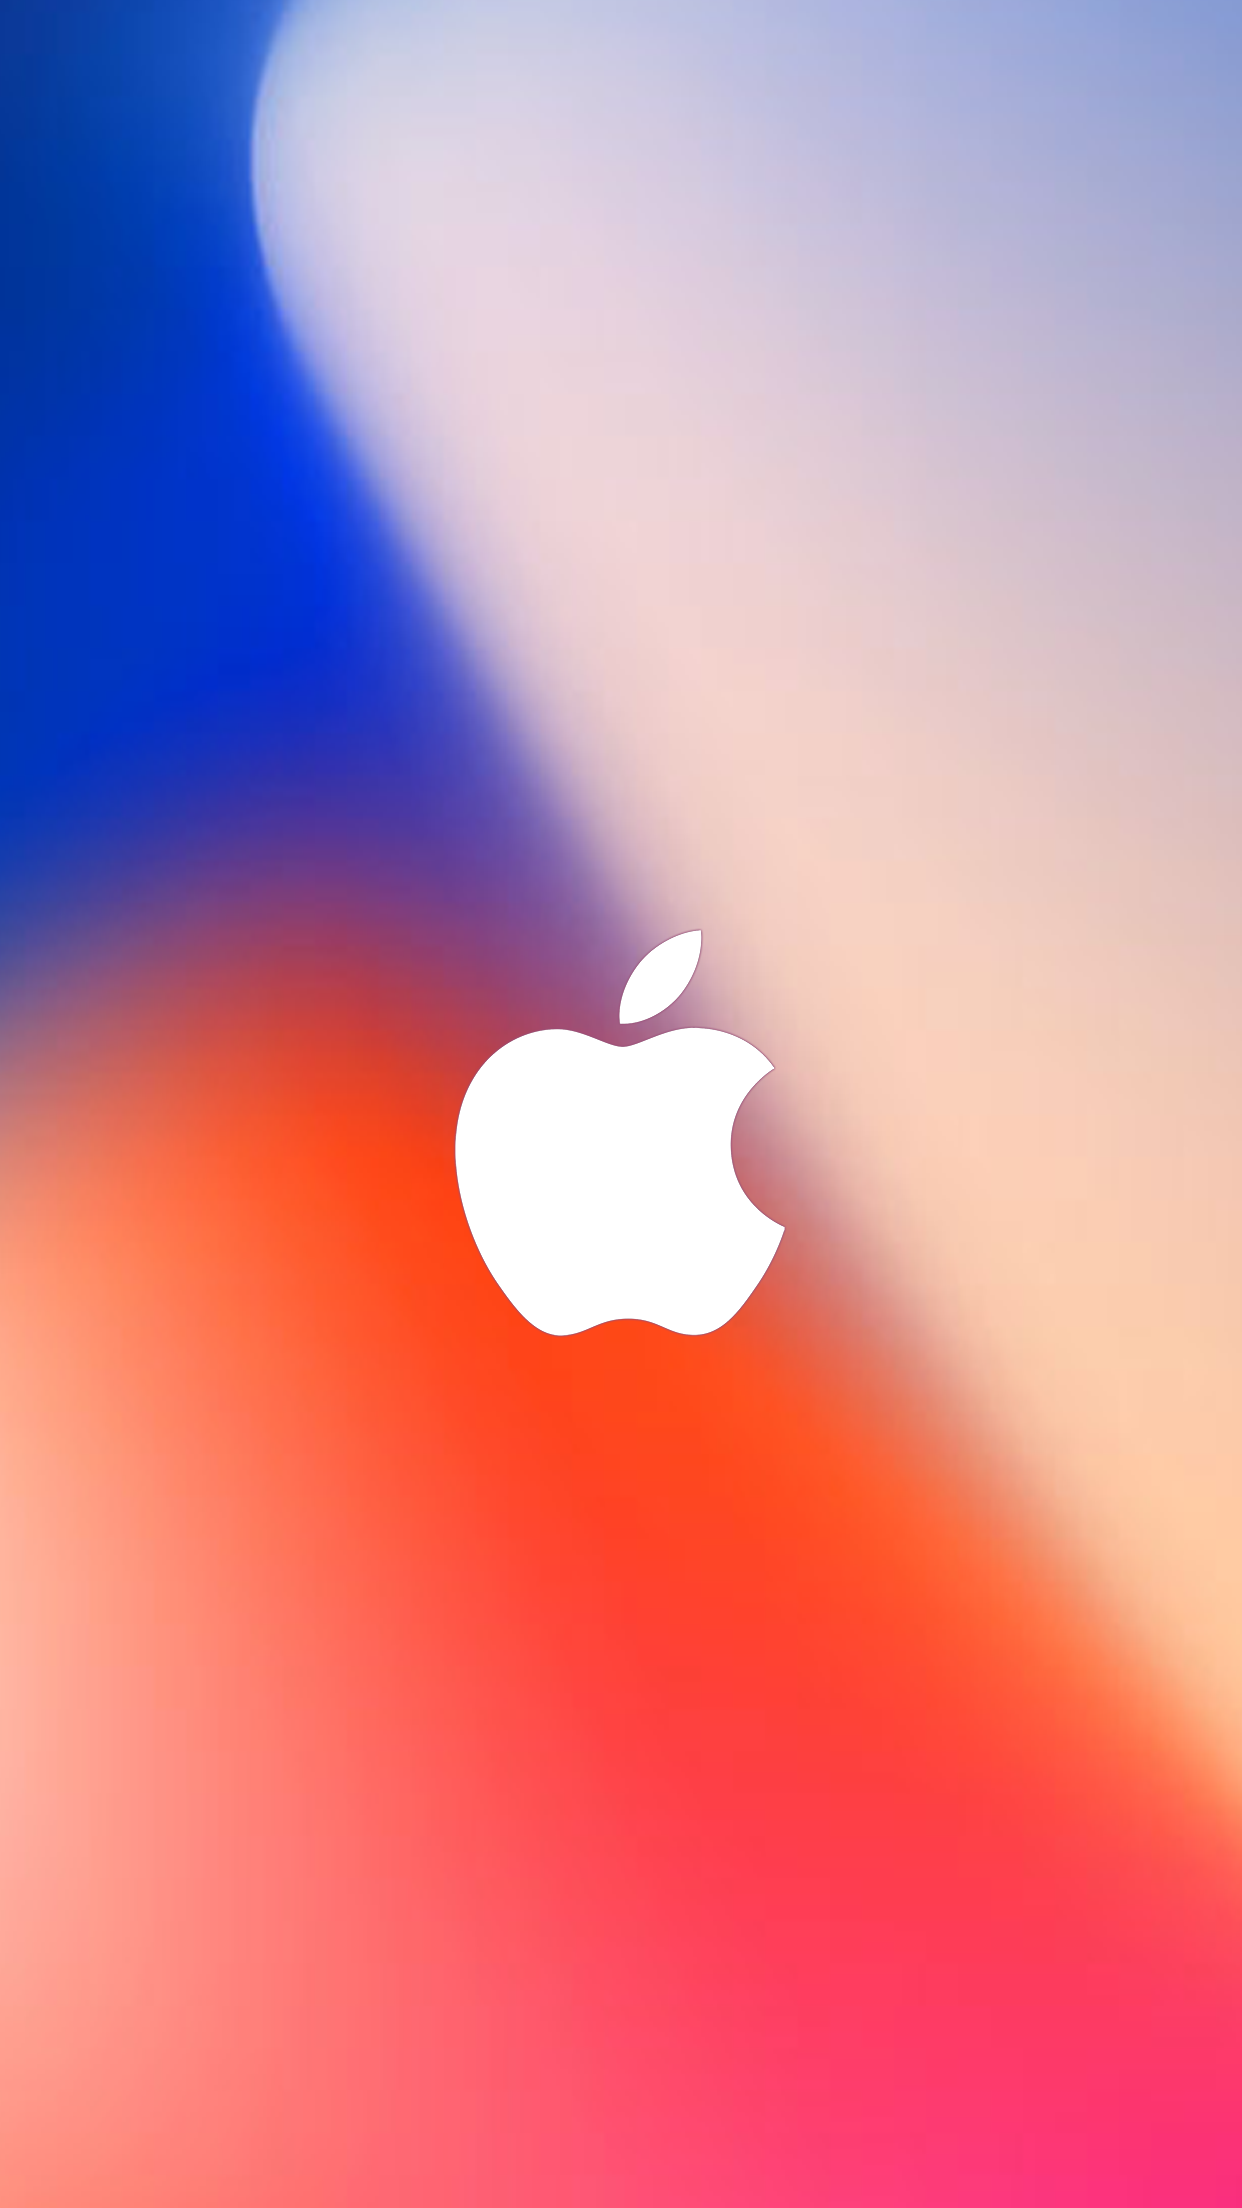 apple iphone wallpaper iphone 8 event wallpapers 4264